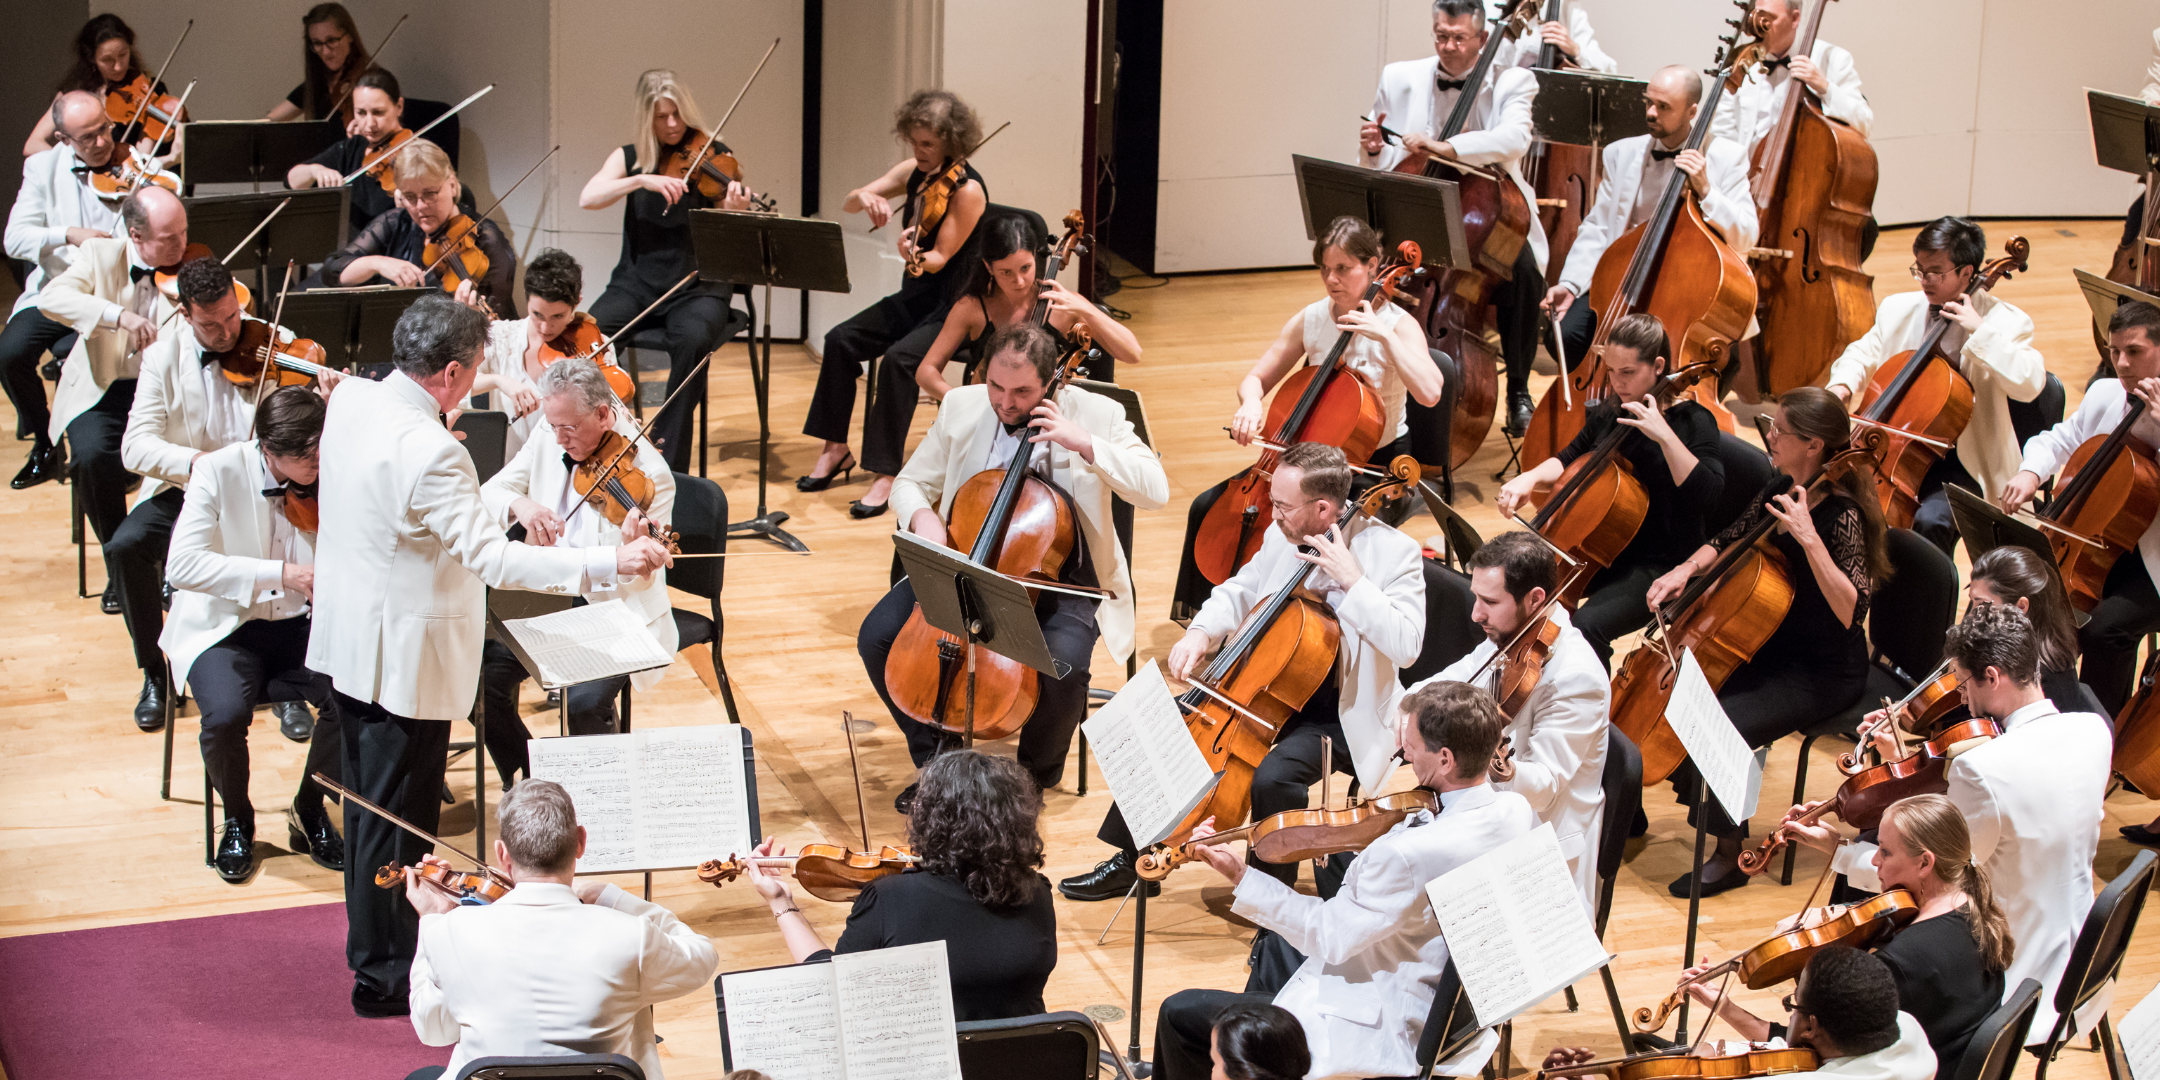 conductor and orchestra string players